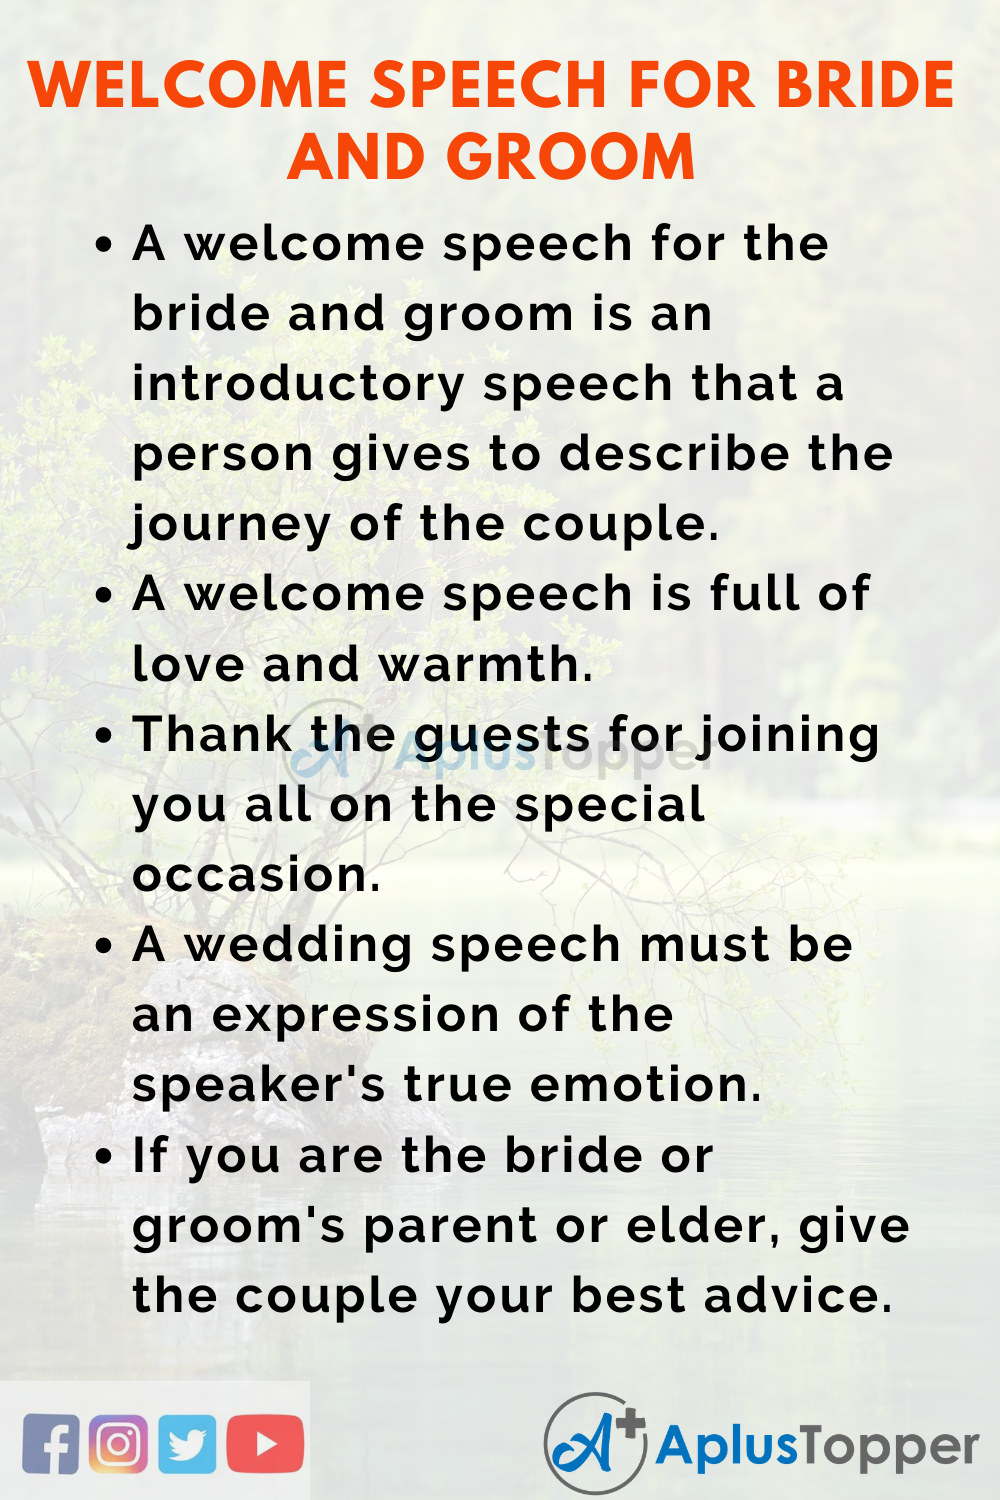 Groom toast to bride and Toasting: A